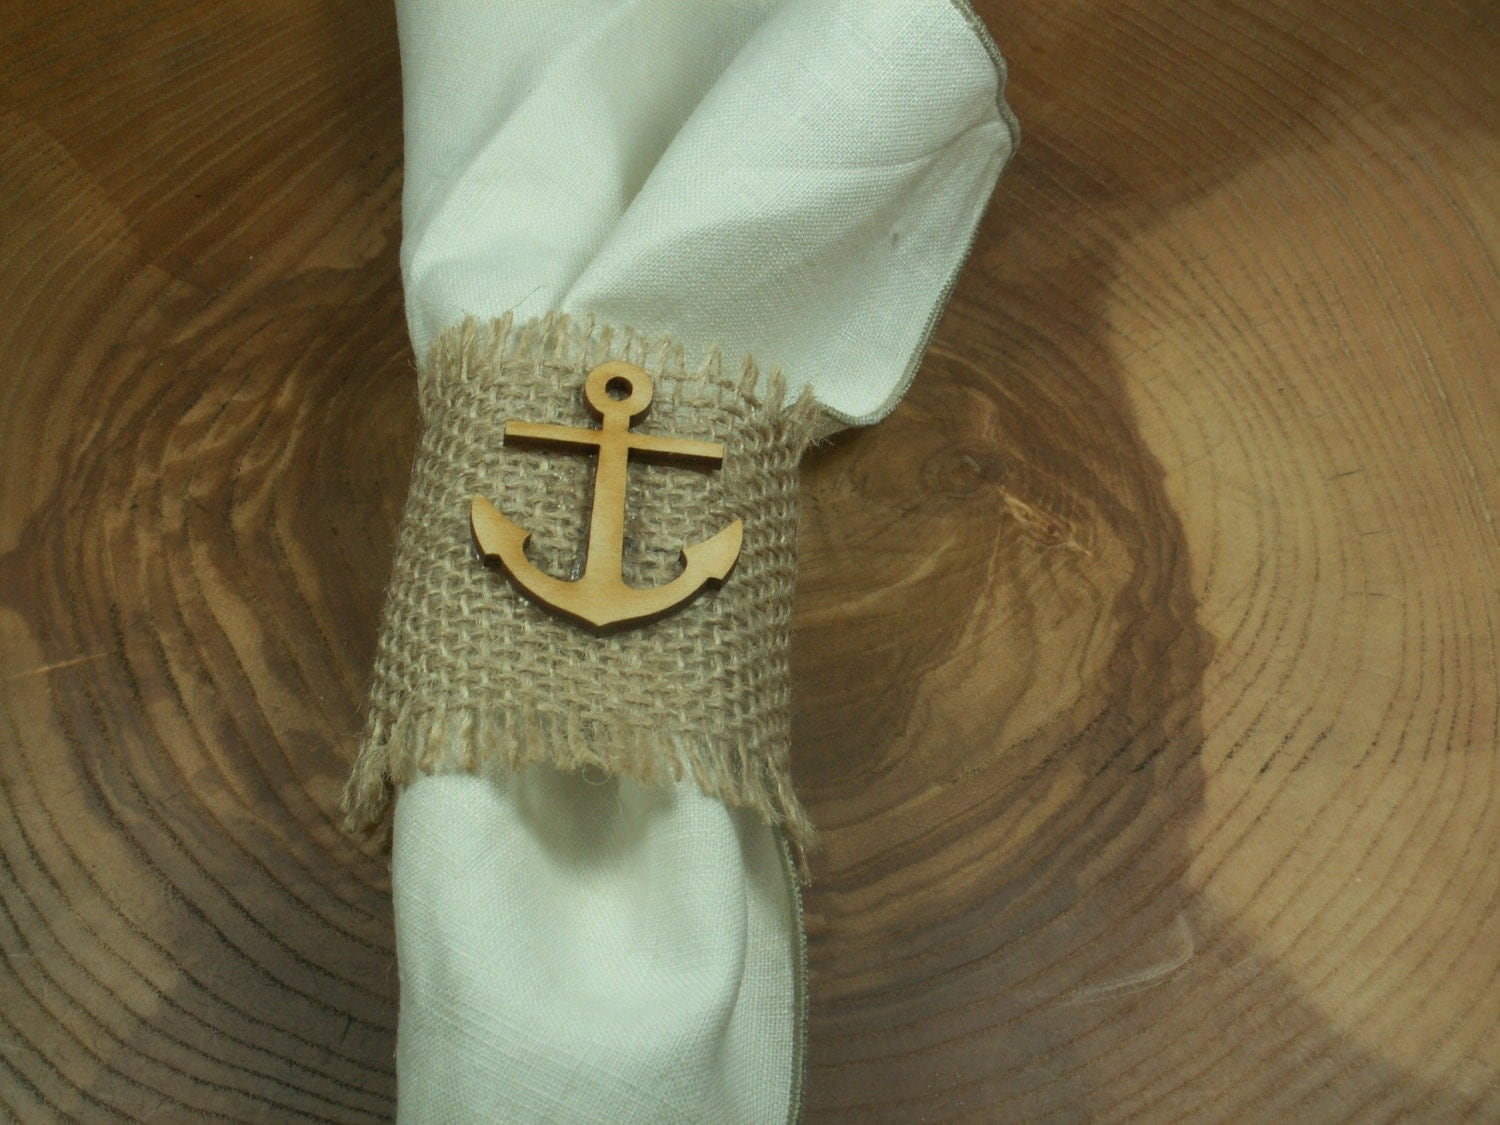 Rustic Style Rustic 50 Burlap Napkin Rings with wood anchor